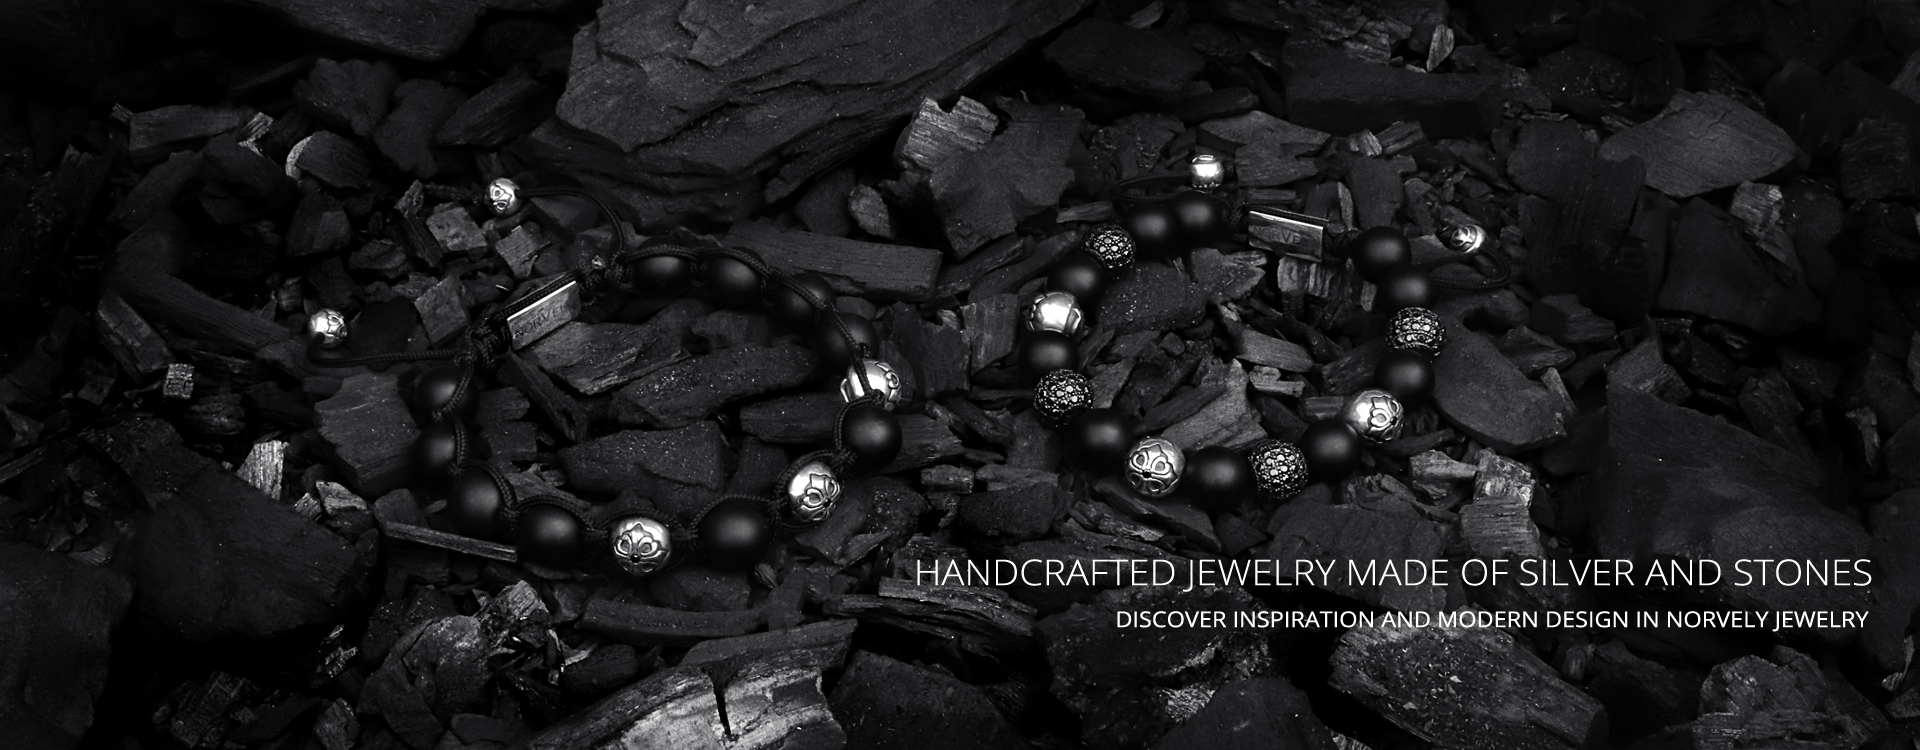 Men's and women's bracelets made of silver and stones